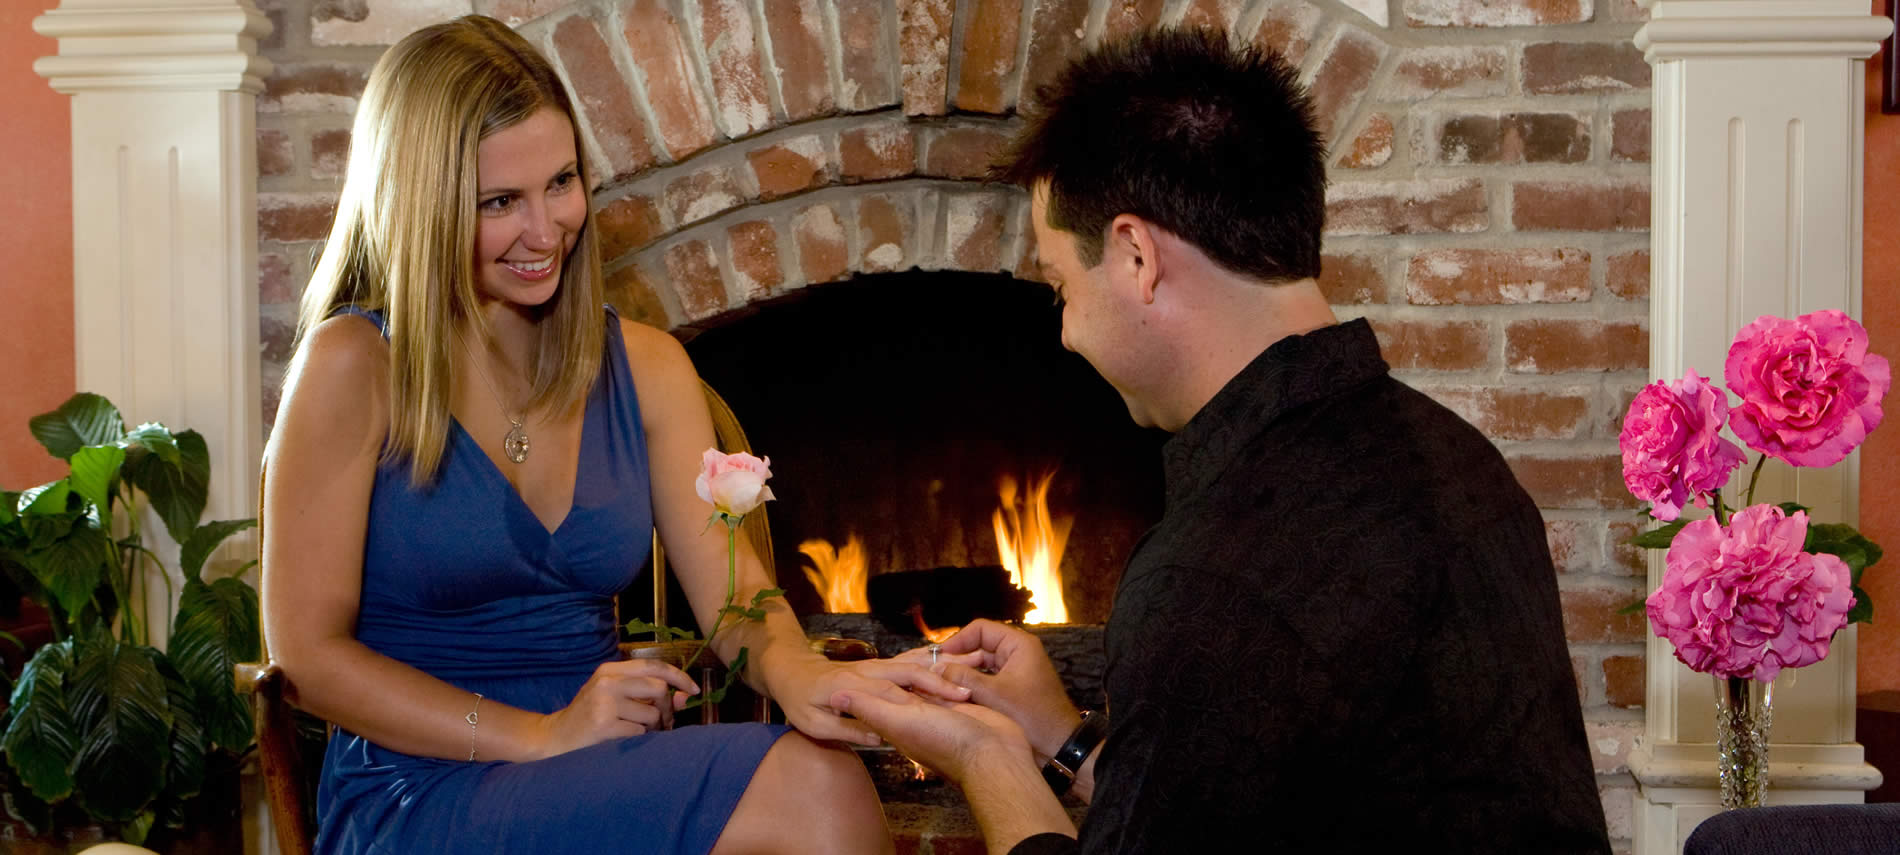 sonoma wine country romantic marriage proposal package